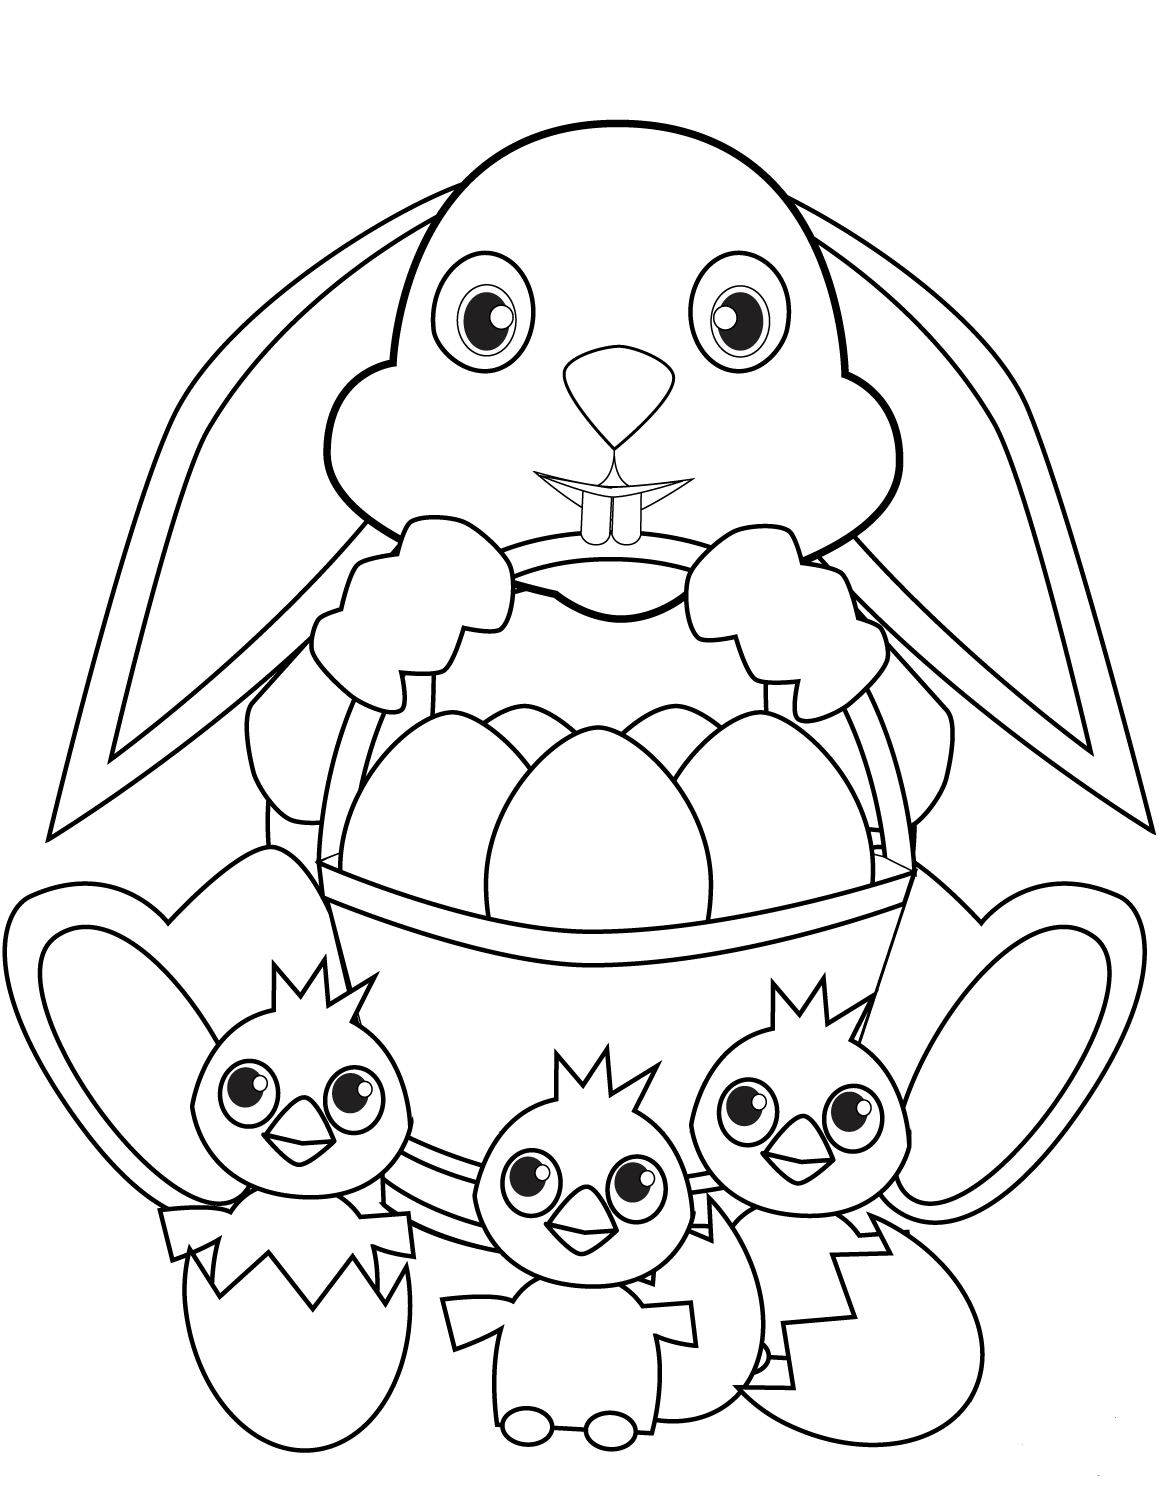 Bunny With Easter Eggs Coloring Page